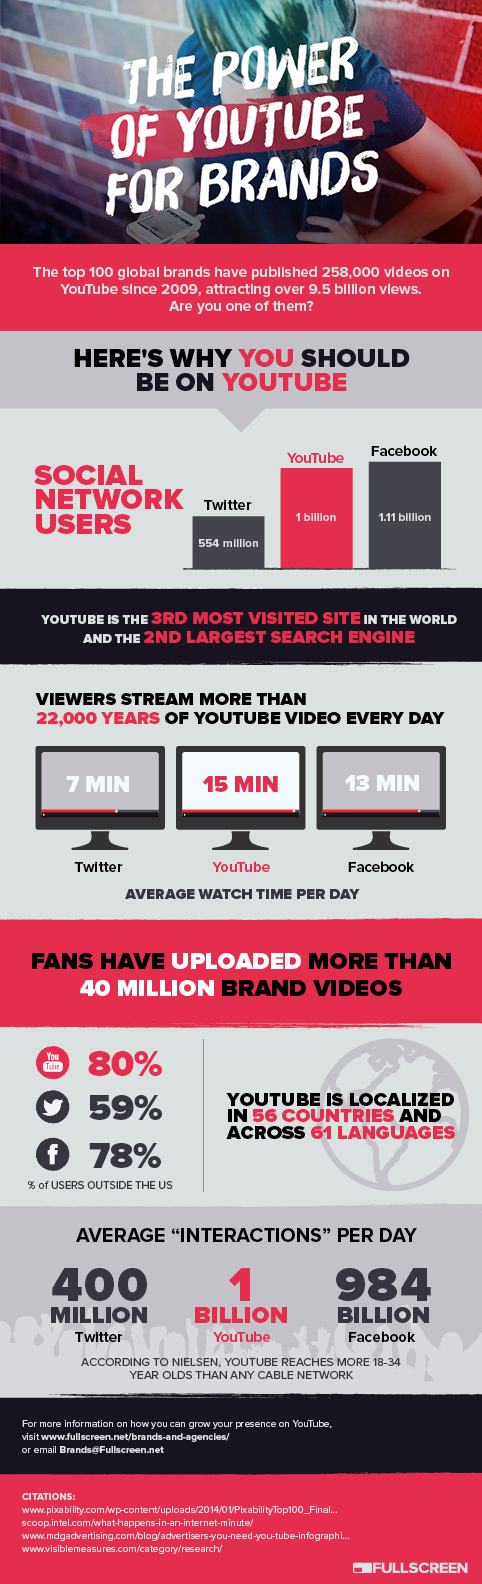 fullscreen-power-of-youtube-for-brands